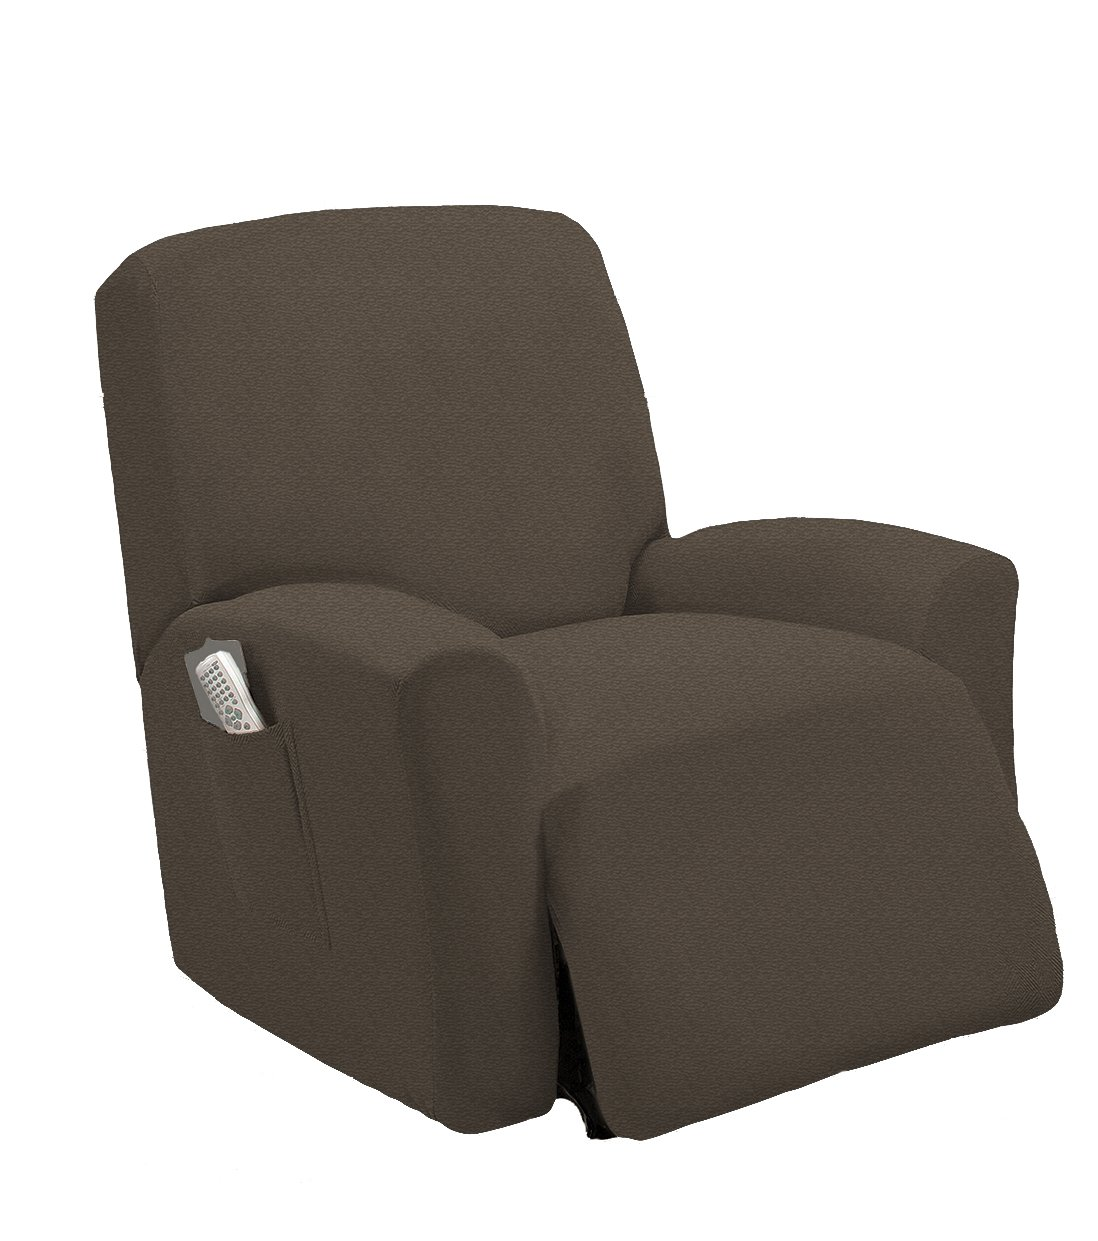 One piece Stretch Recliner Chair Furniture Slipcovers with Remote Pocket Fit most Recliner Chairs (Black) GoldenLinens